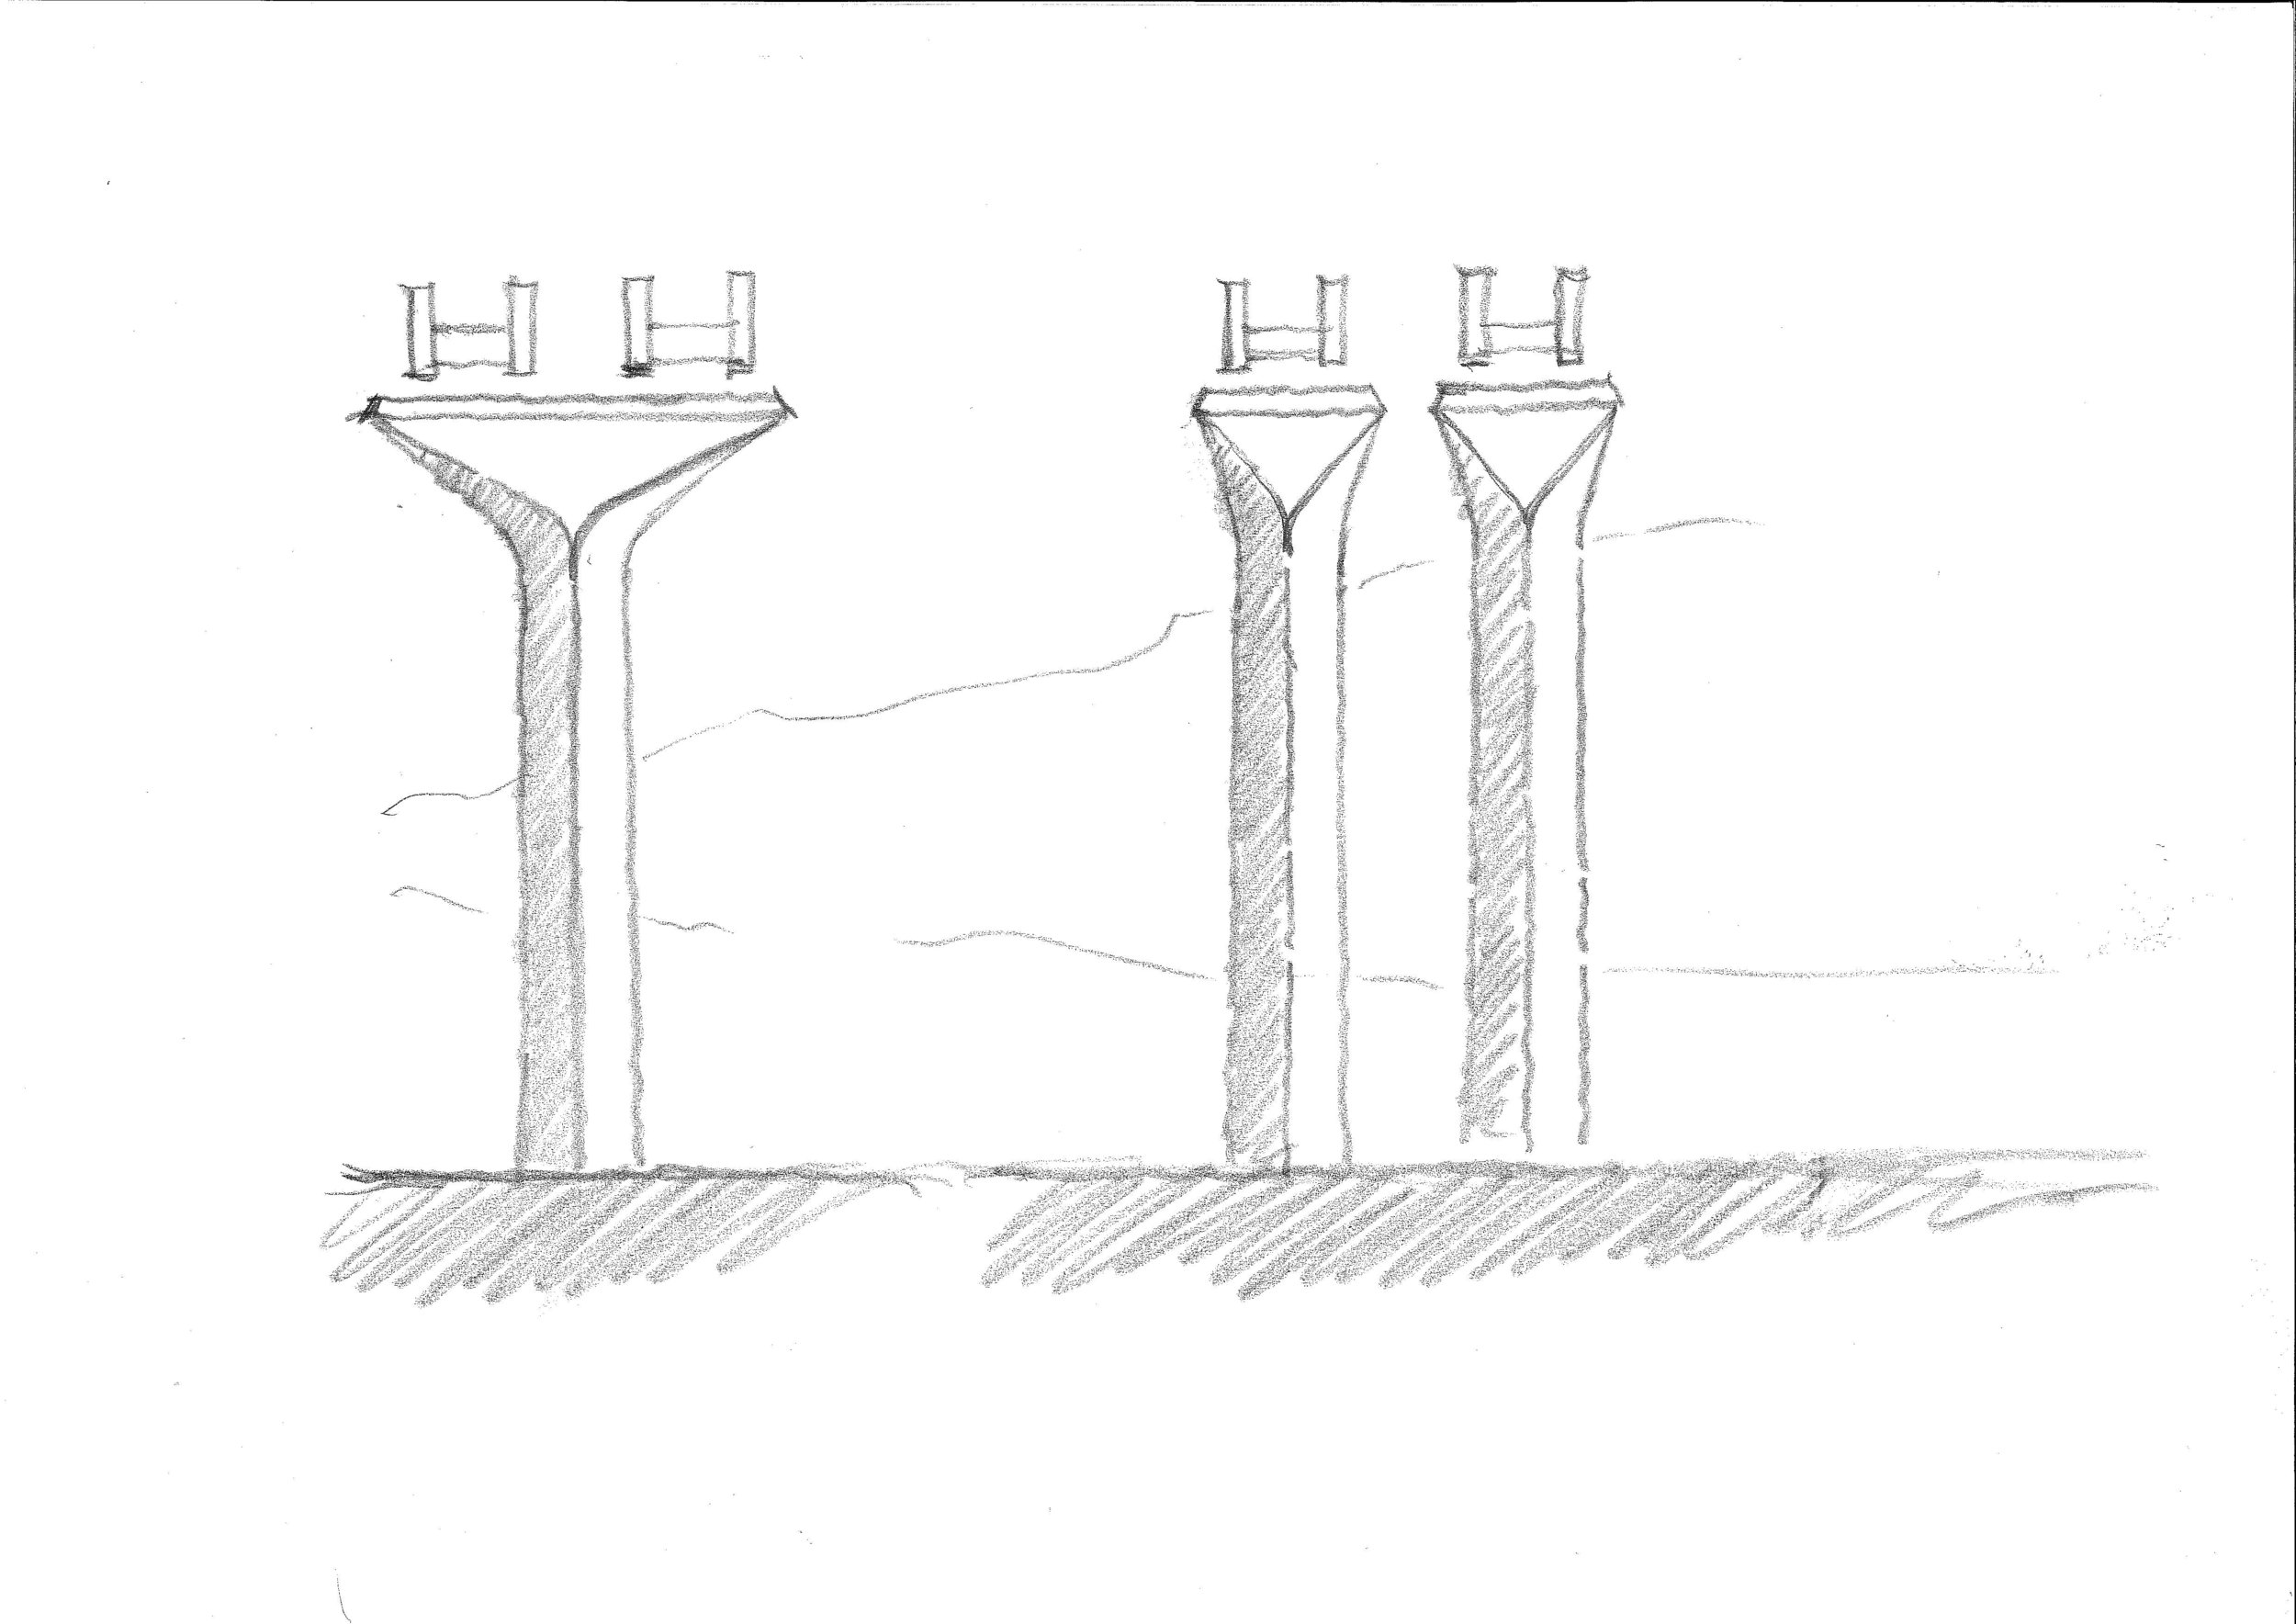 Pier alterations_Page_1.jpg